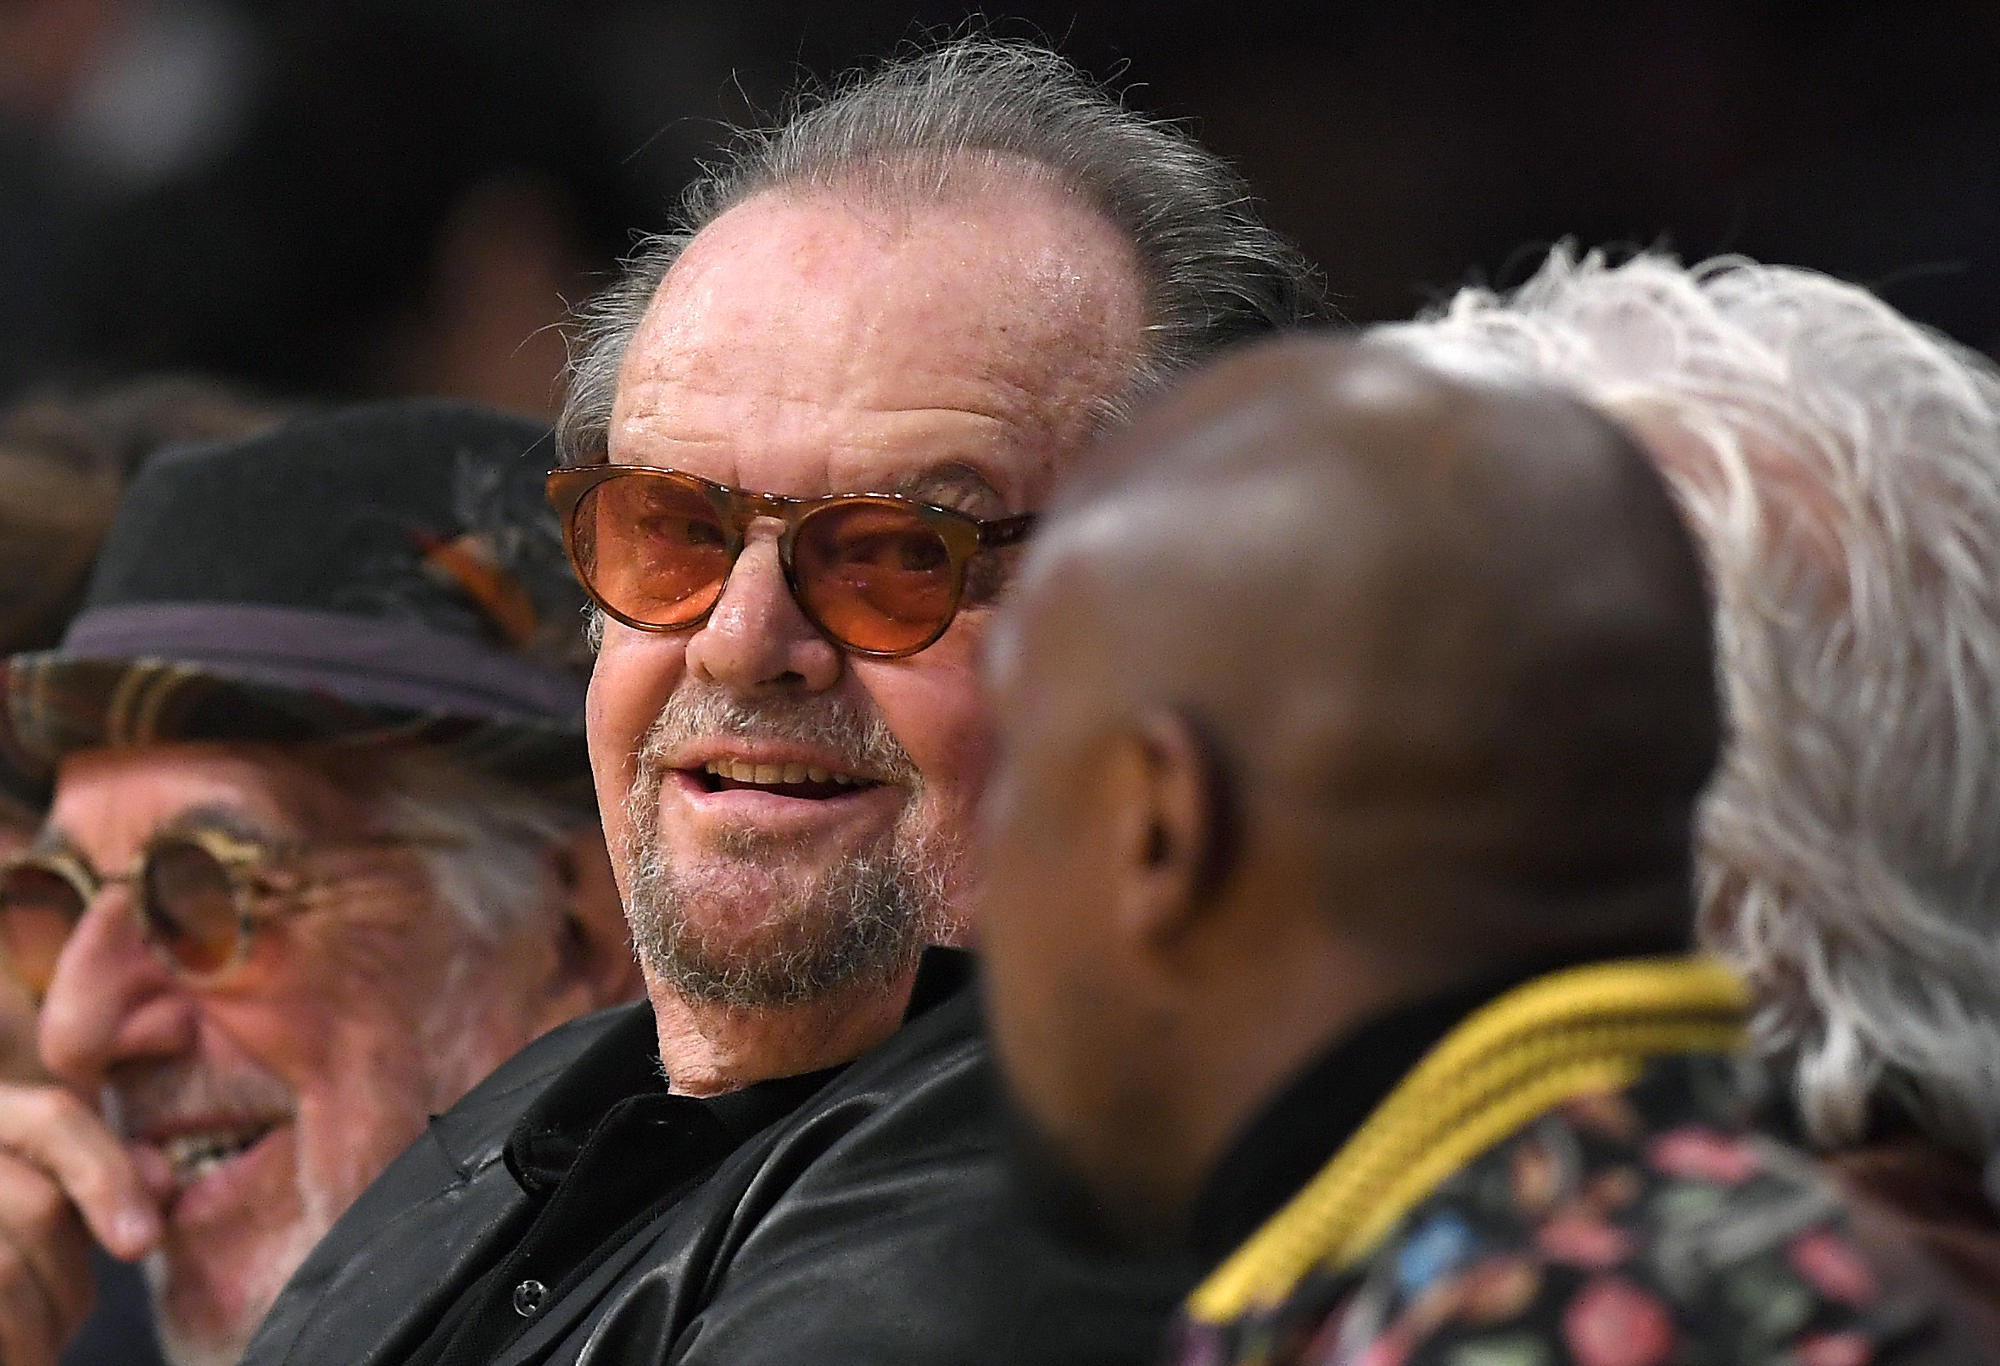 Jack Nicholson courtside at Staples Centre